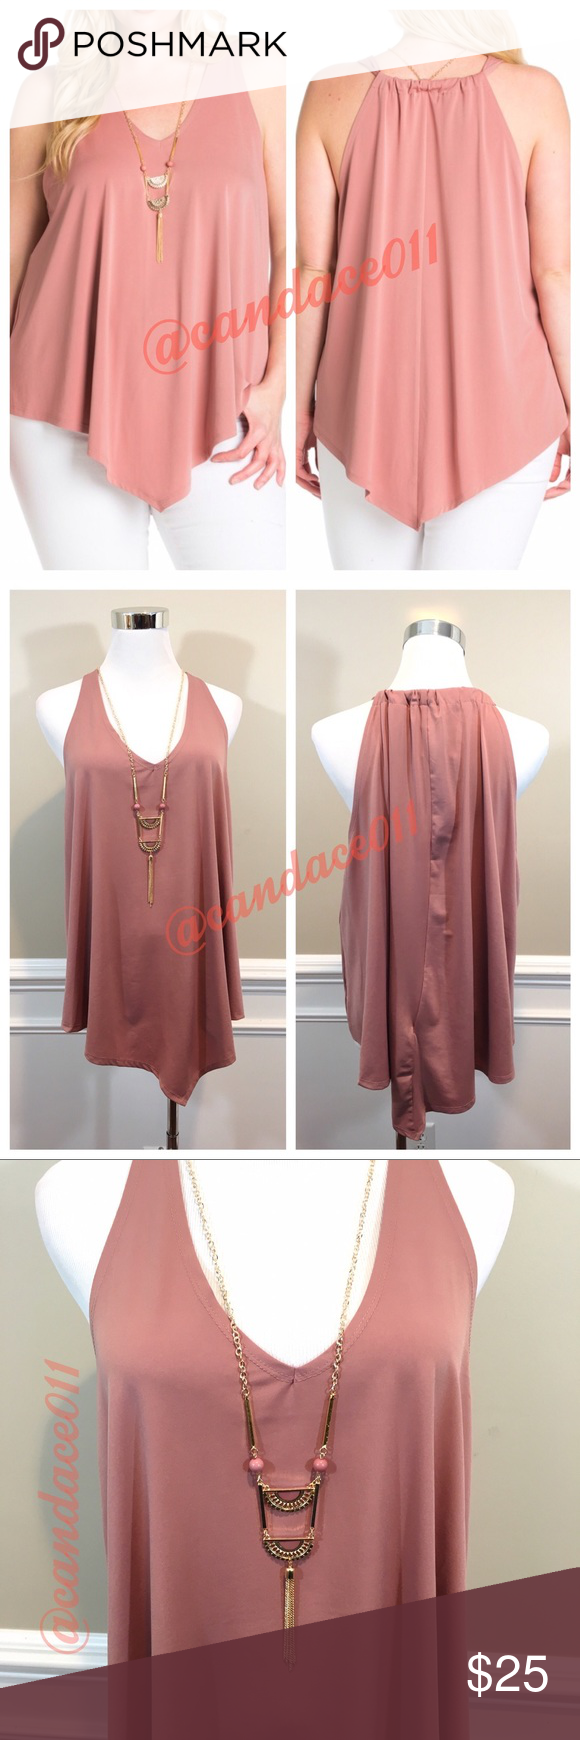 Mauve Pink Sleeveless V-Neck Top 🔹96% Polyester, 4% Spandex 🔹Comes with removable necklace 🔹Size Recommendations: 1X (16-18); 2X (20-22); 3X (24-26) CC Boutique  Tops Tank Tops